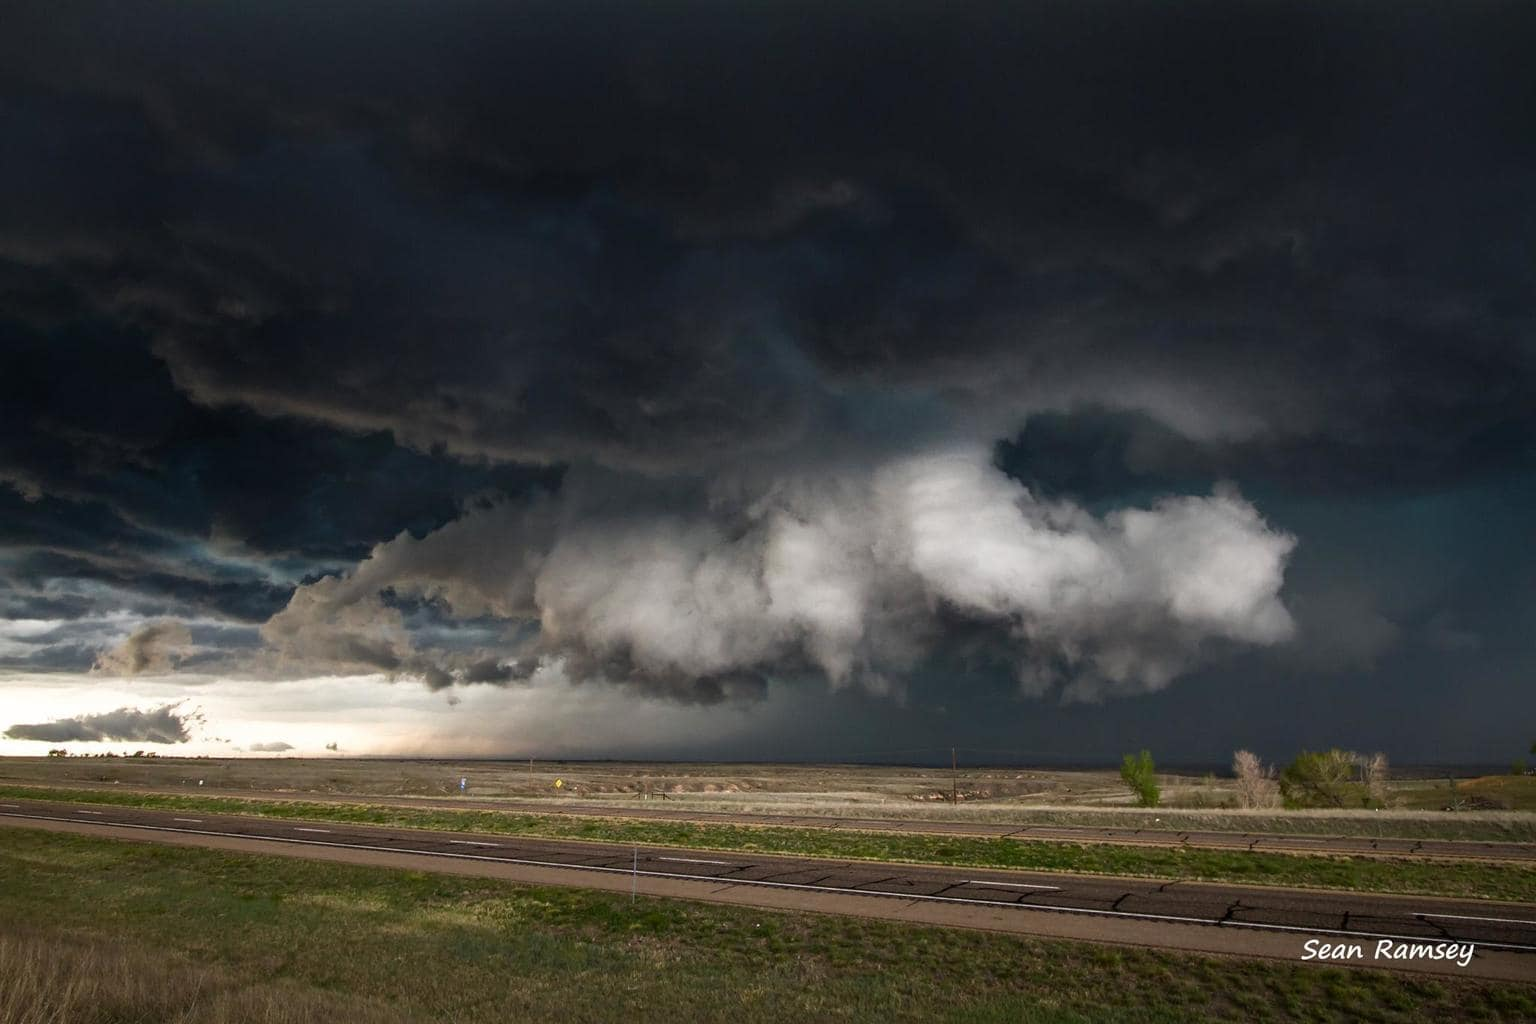 Along I-40 in the Texas Panhandle on April 16th.